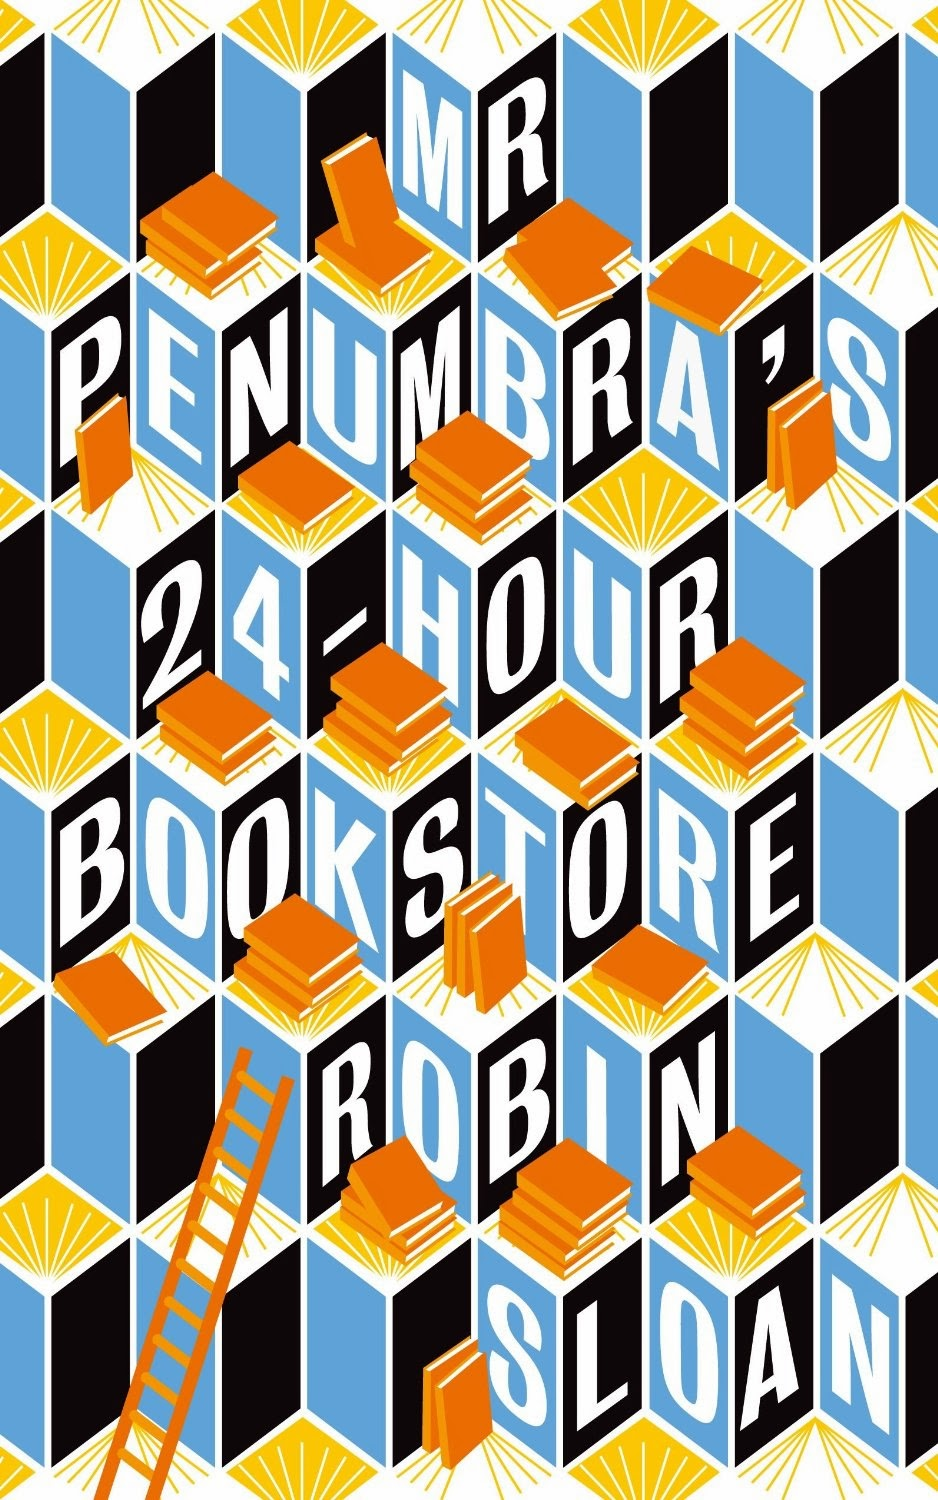 UK book cover of Mr Penumbra's 24 Hour Bookstore by Robin Sloan